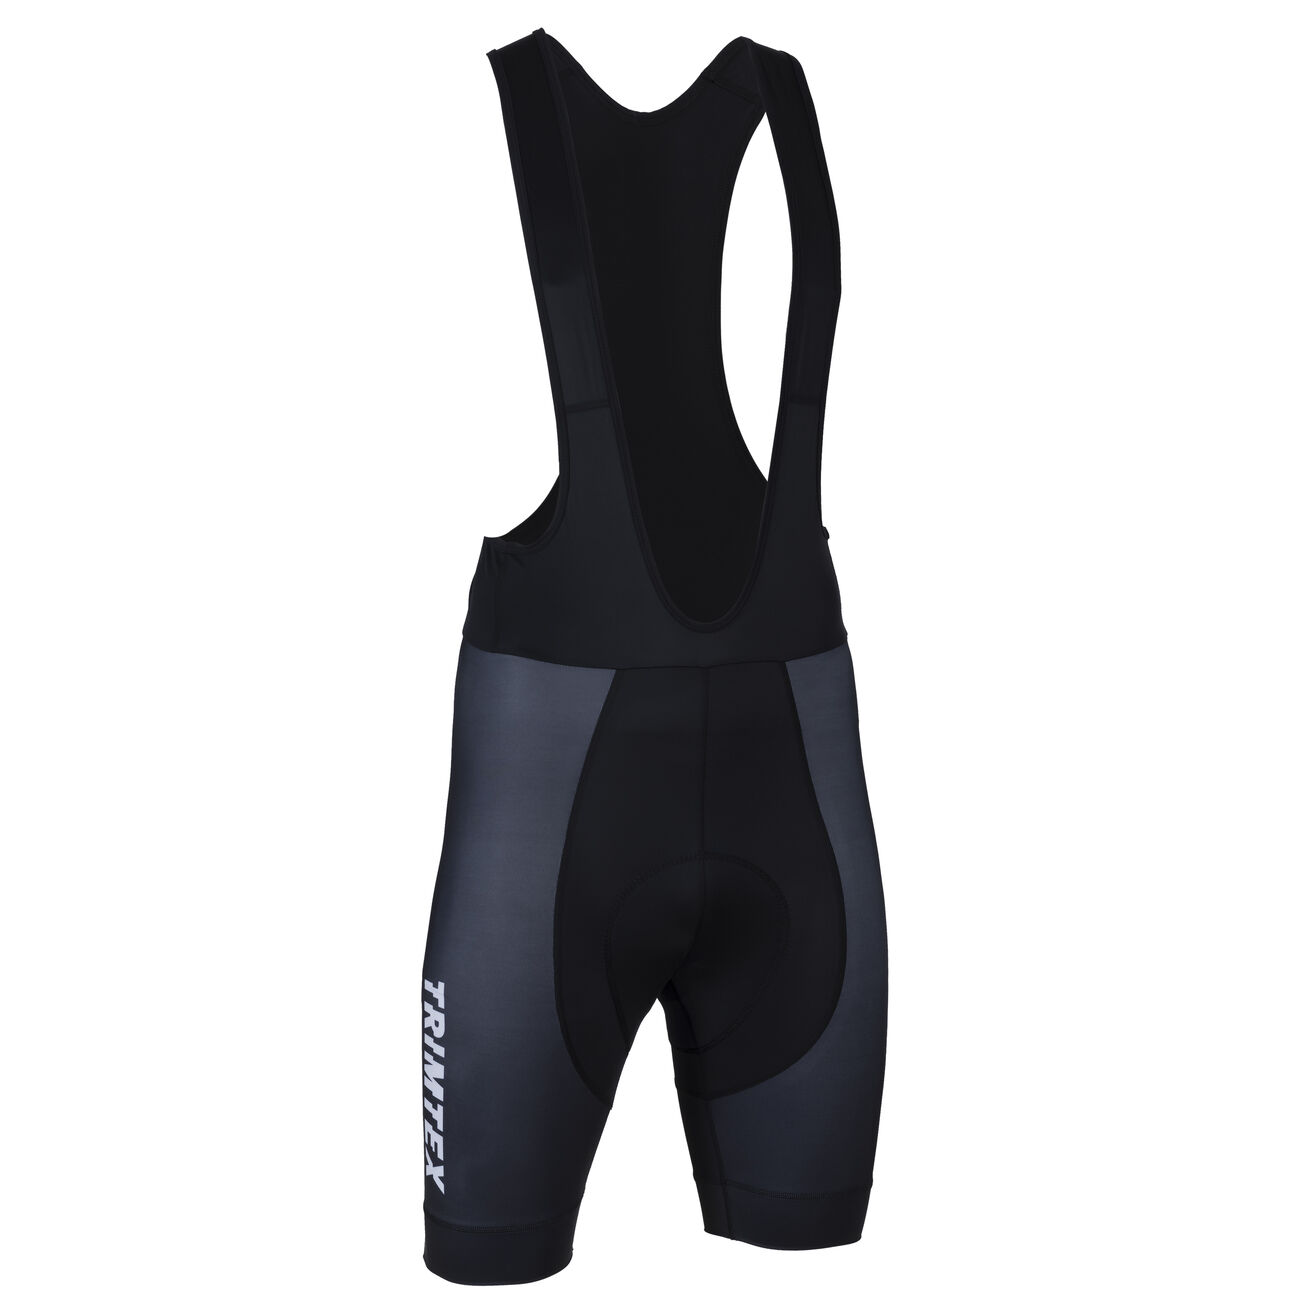 Team cycling bib shorts men's